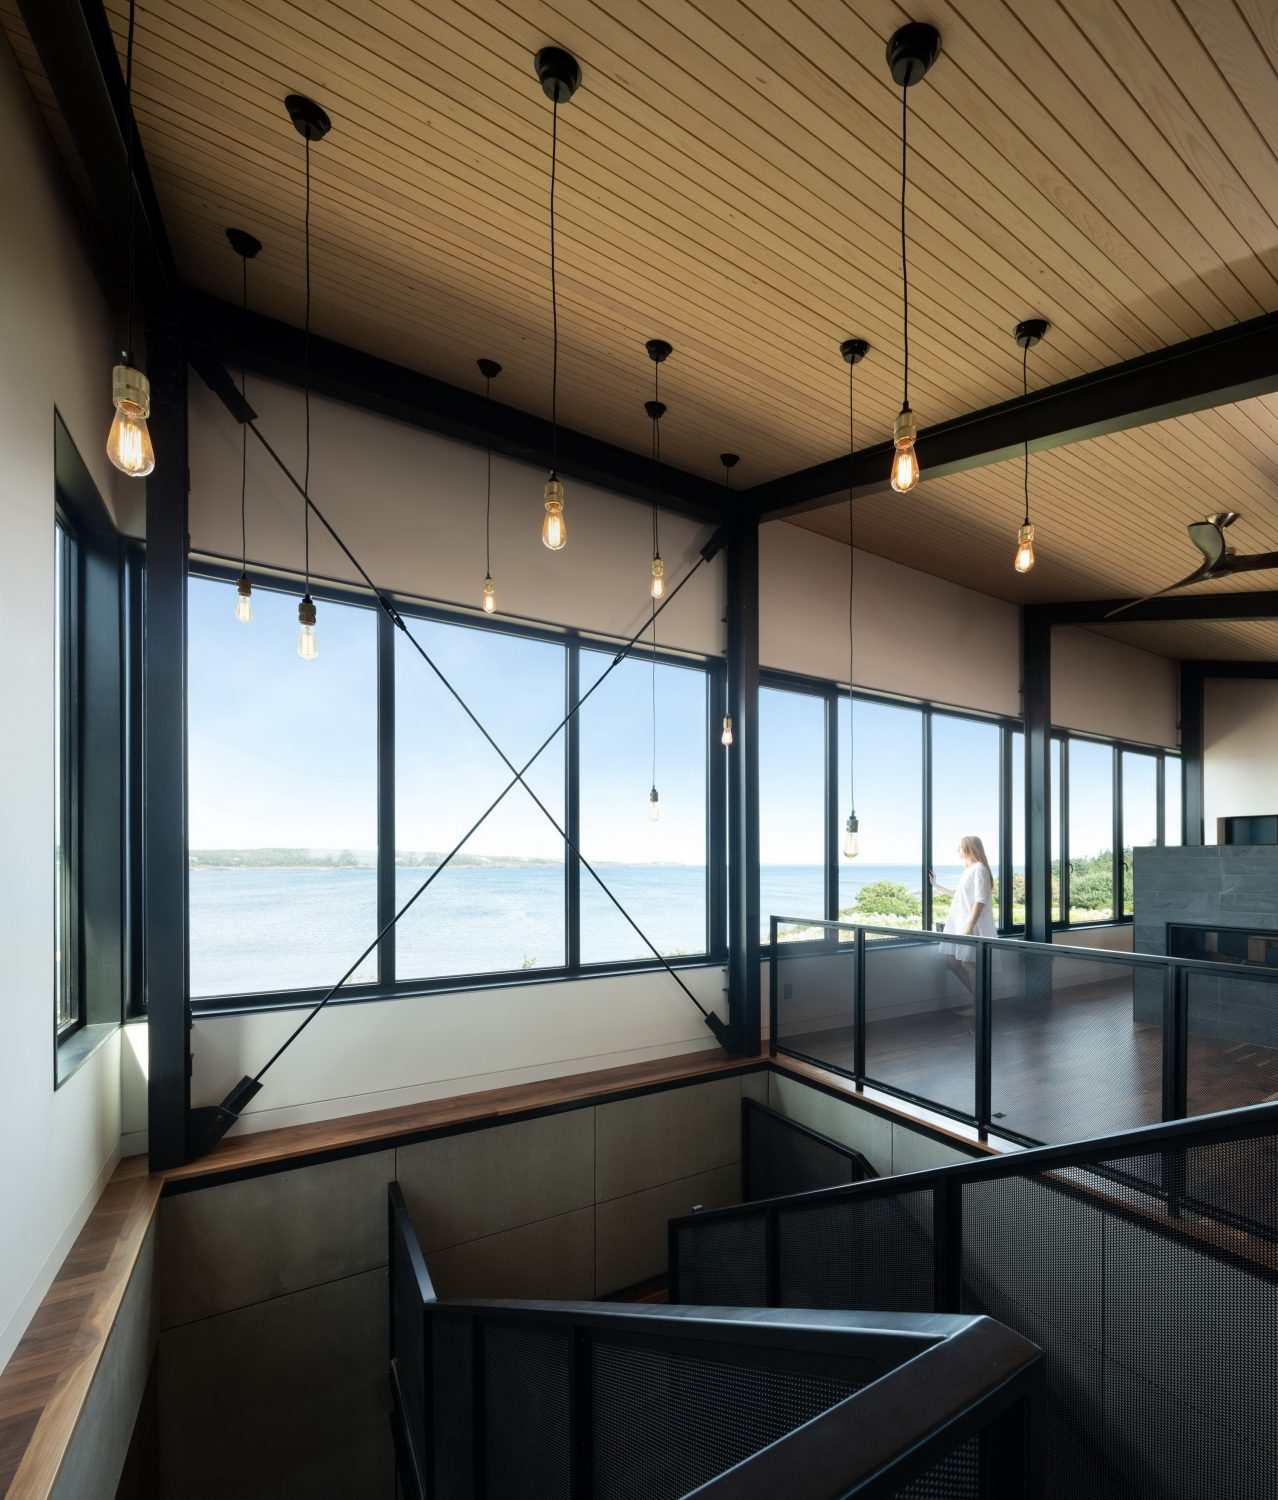 Treow Brycg House – Fortress-Like Home by Omar Gandhi Architect